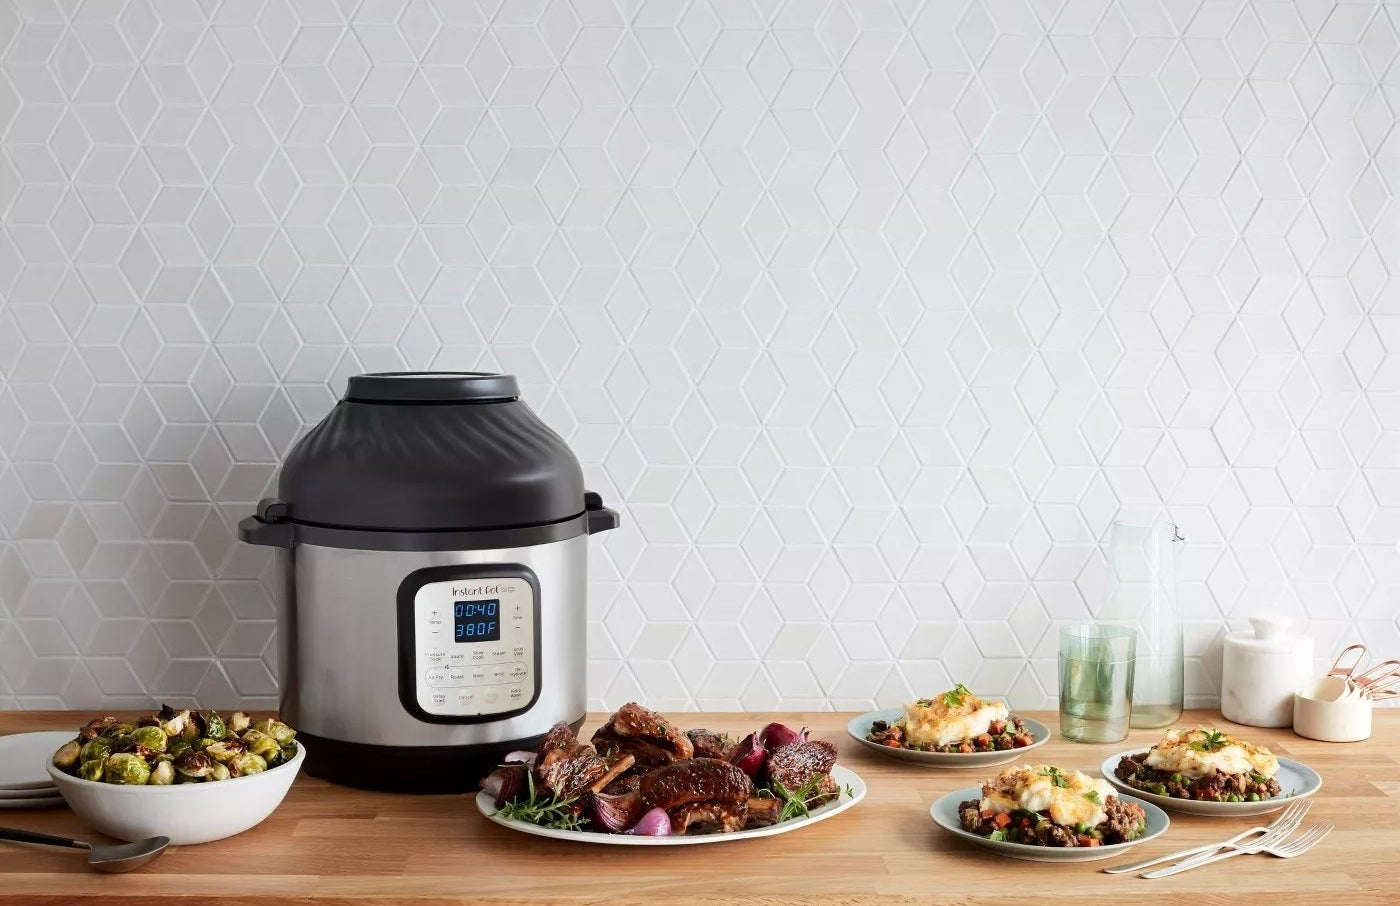 The Instant Pot with an air fryer lid